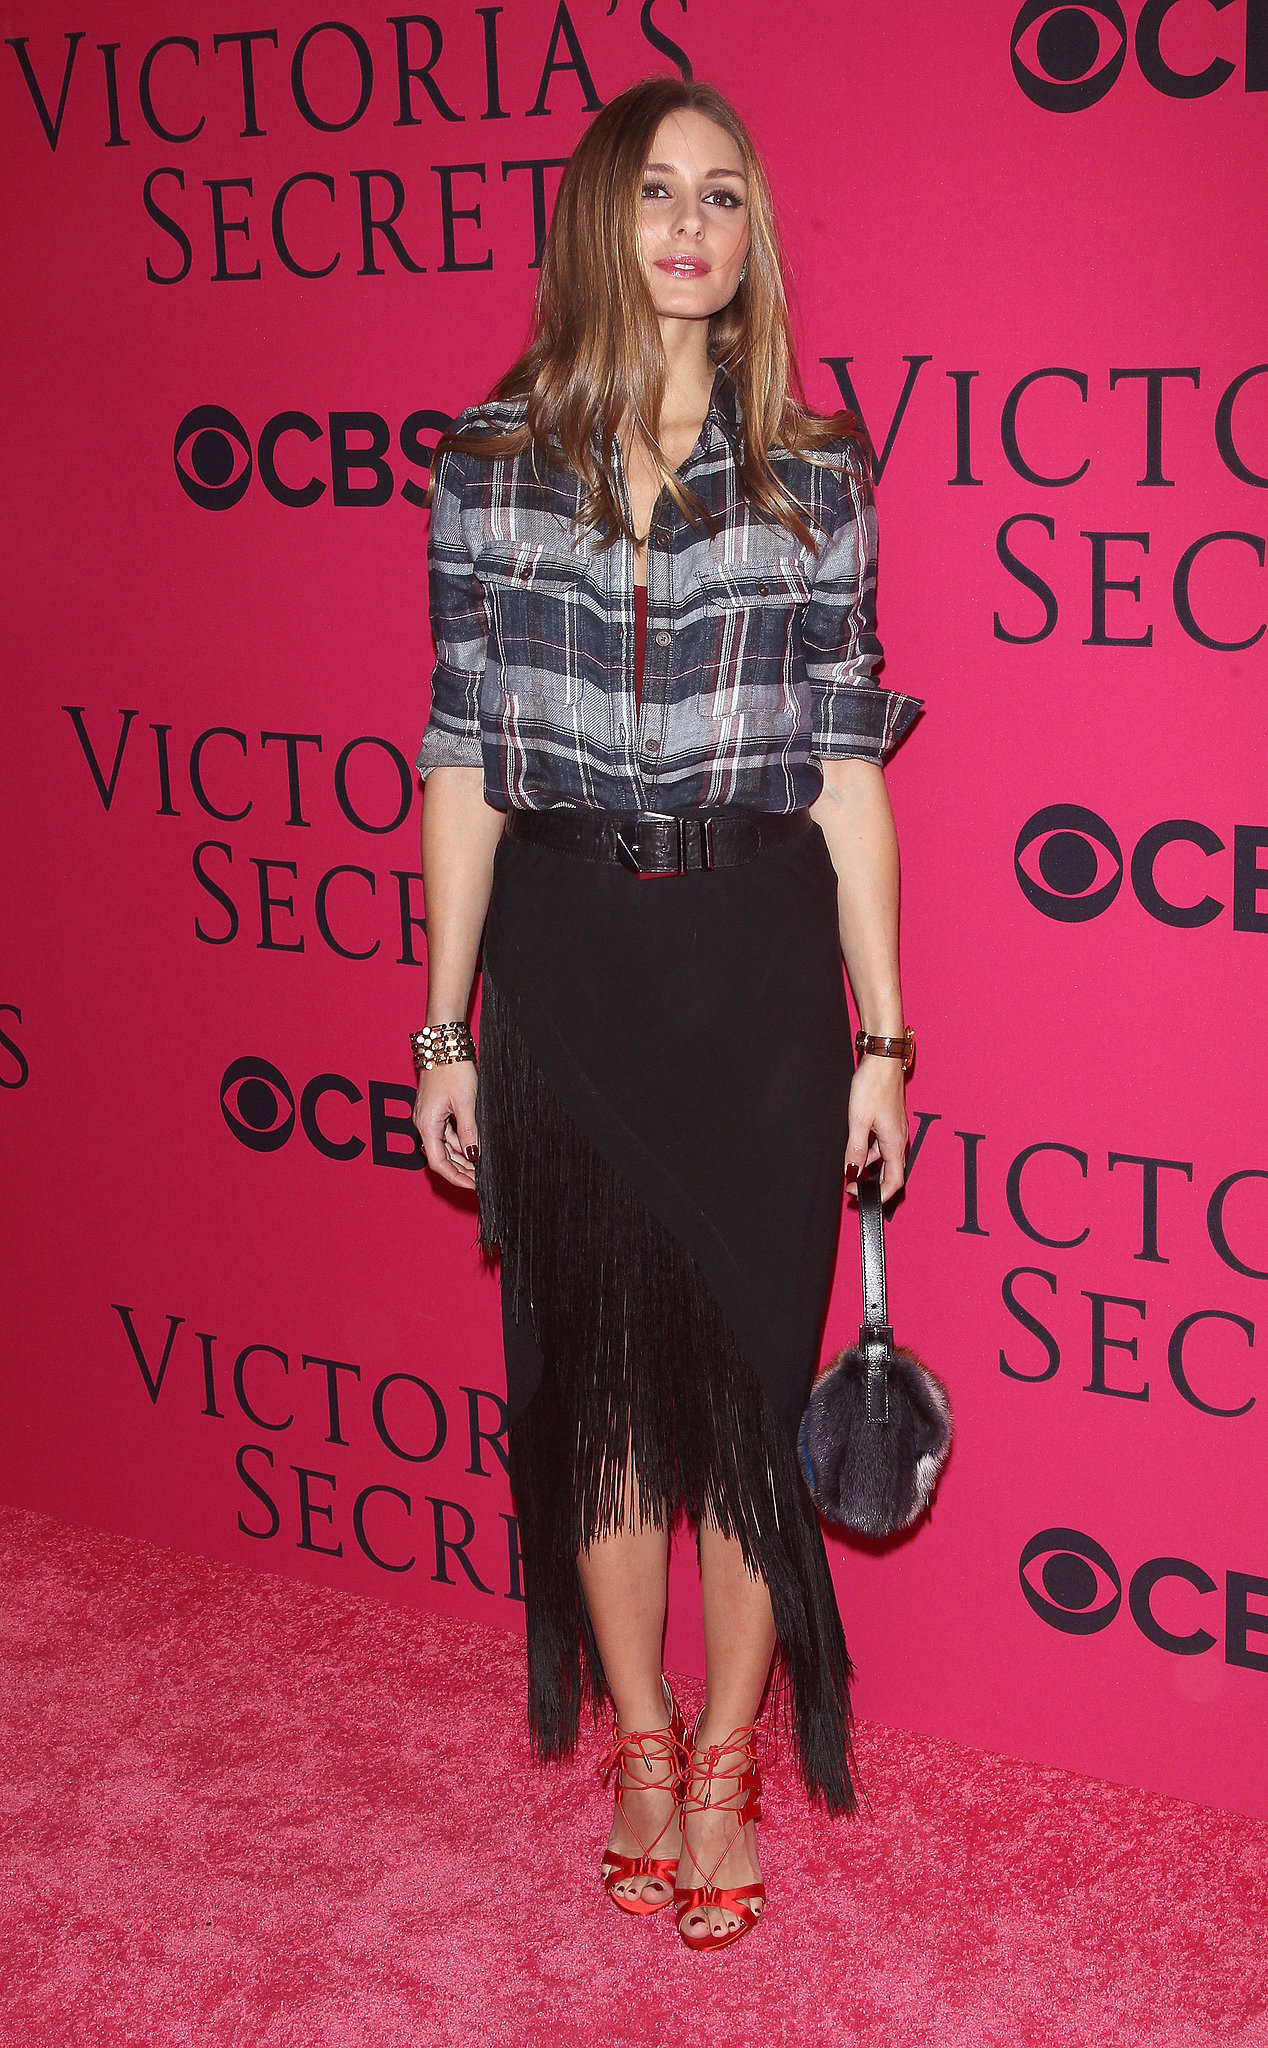 She doesn't care about the dress code, either. Who else would wear a plaid button-down to the Victoria's Secret Fashion Show?